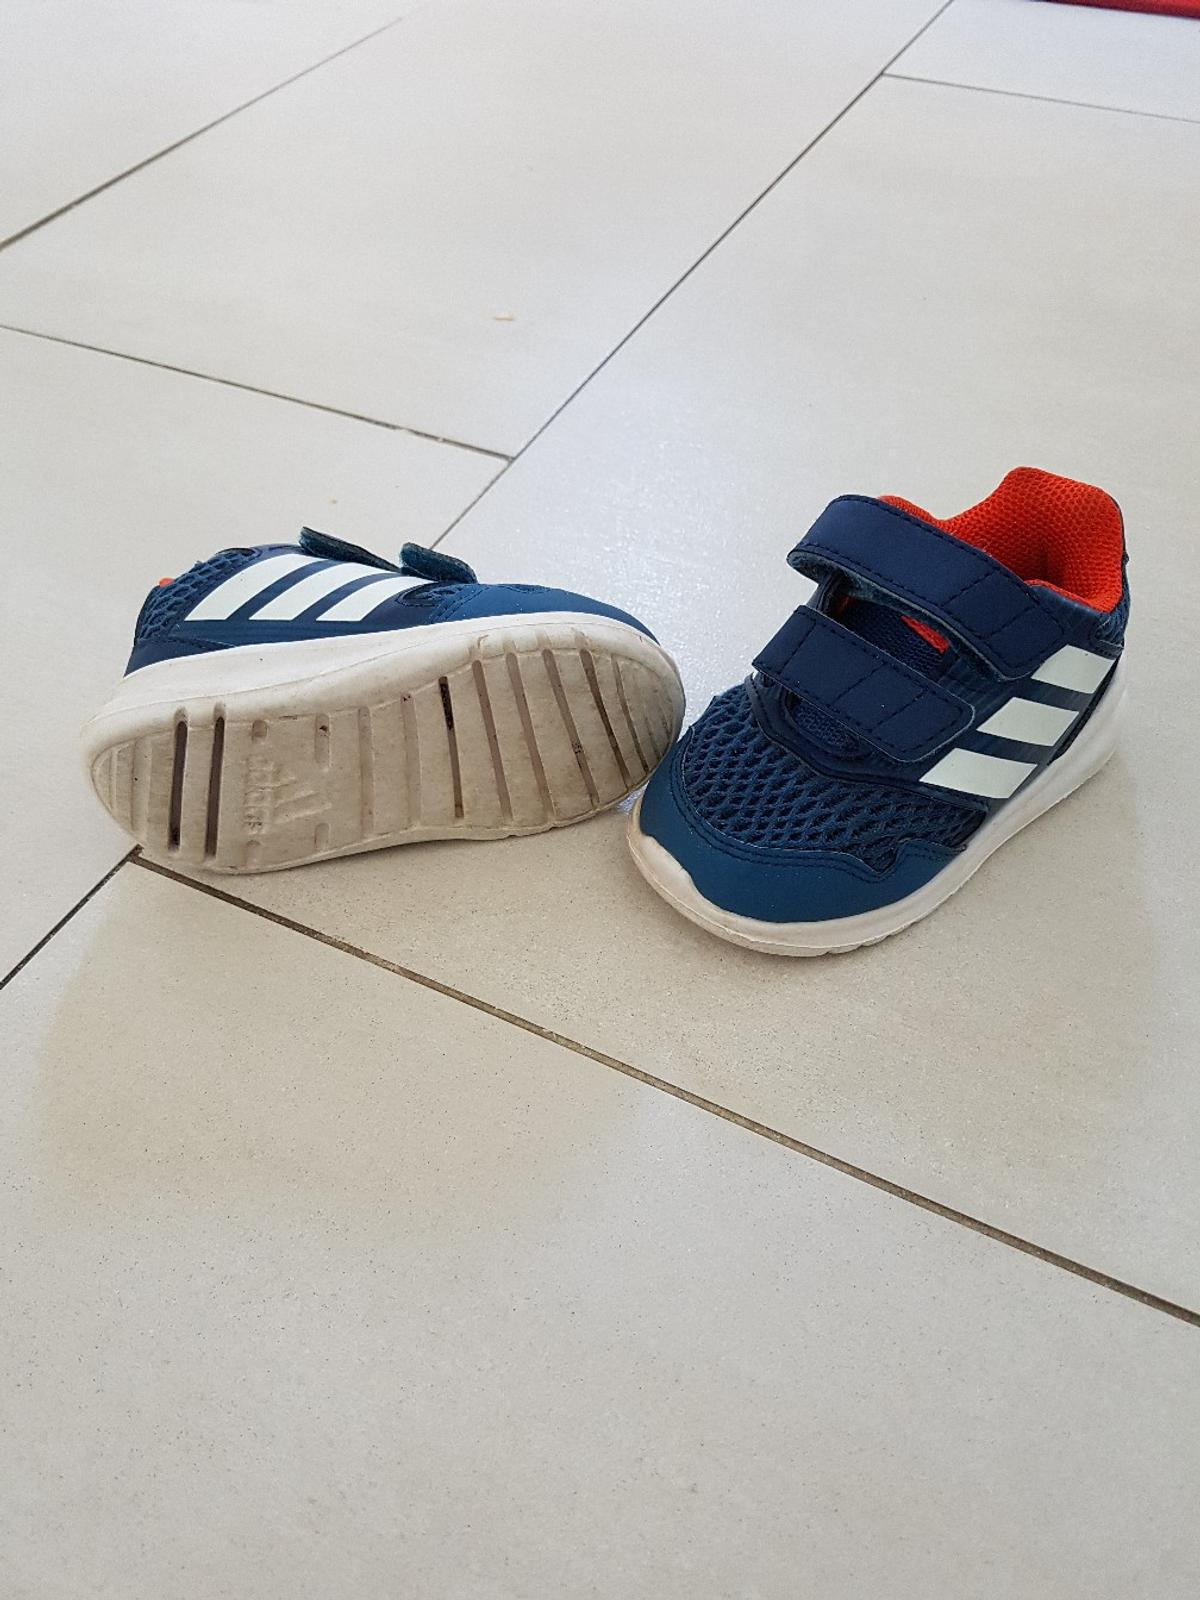 for €10 03051 Cottbus 20 for in Adidas sale 00 schuheGröße XZOTlikuwP